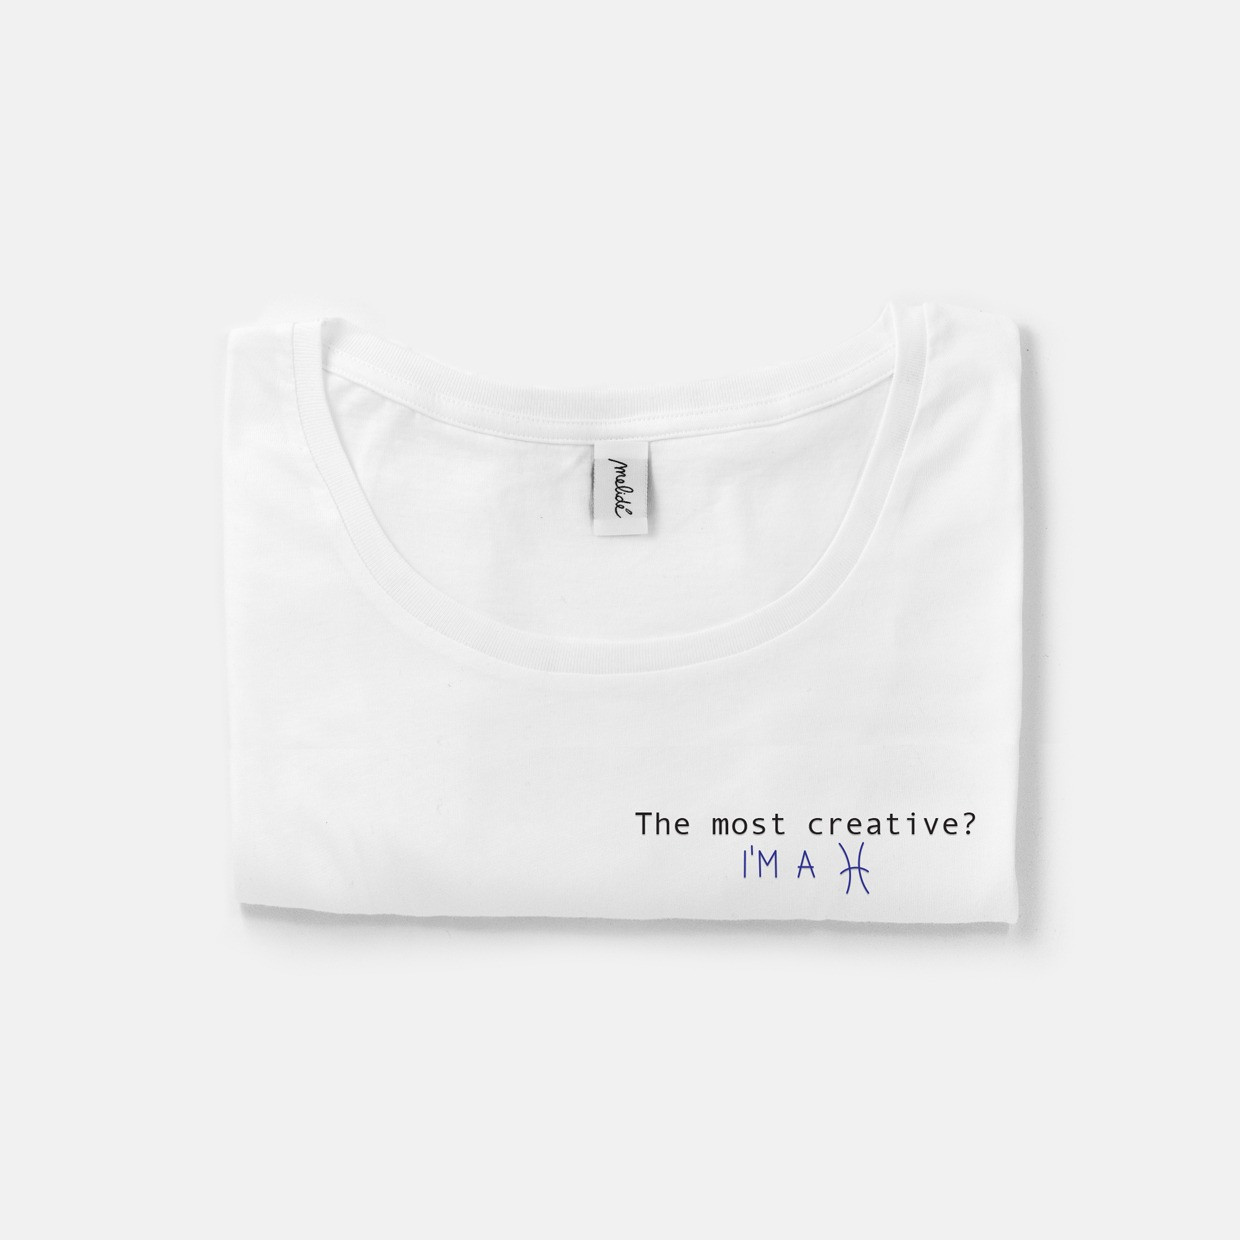 The MOST CREATIVE? PISCES wide neck tee